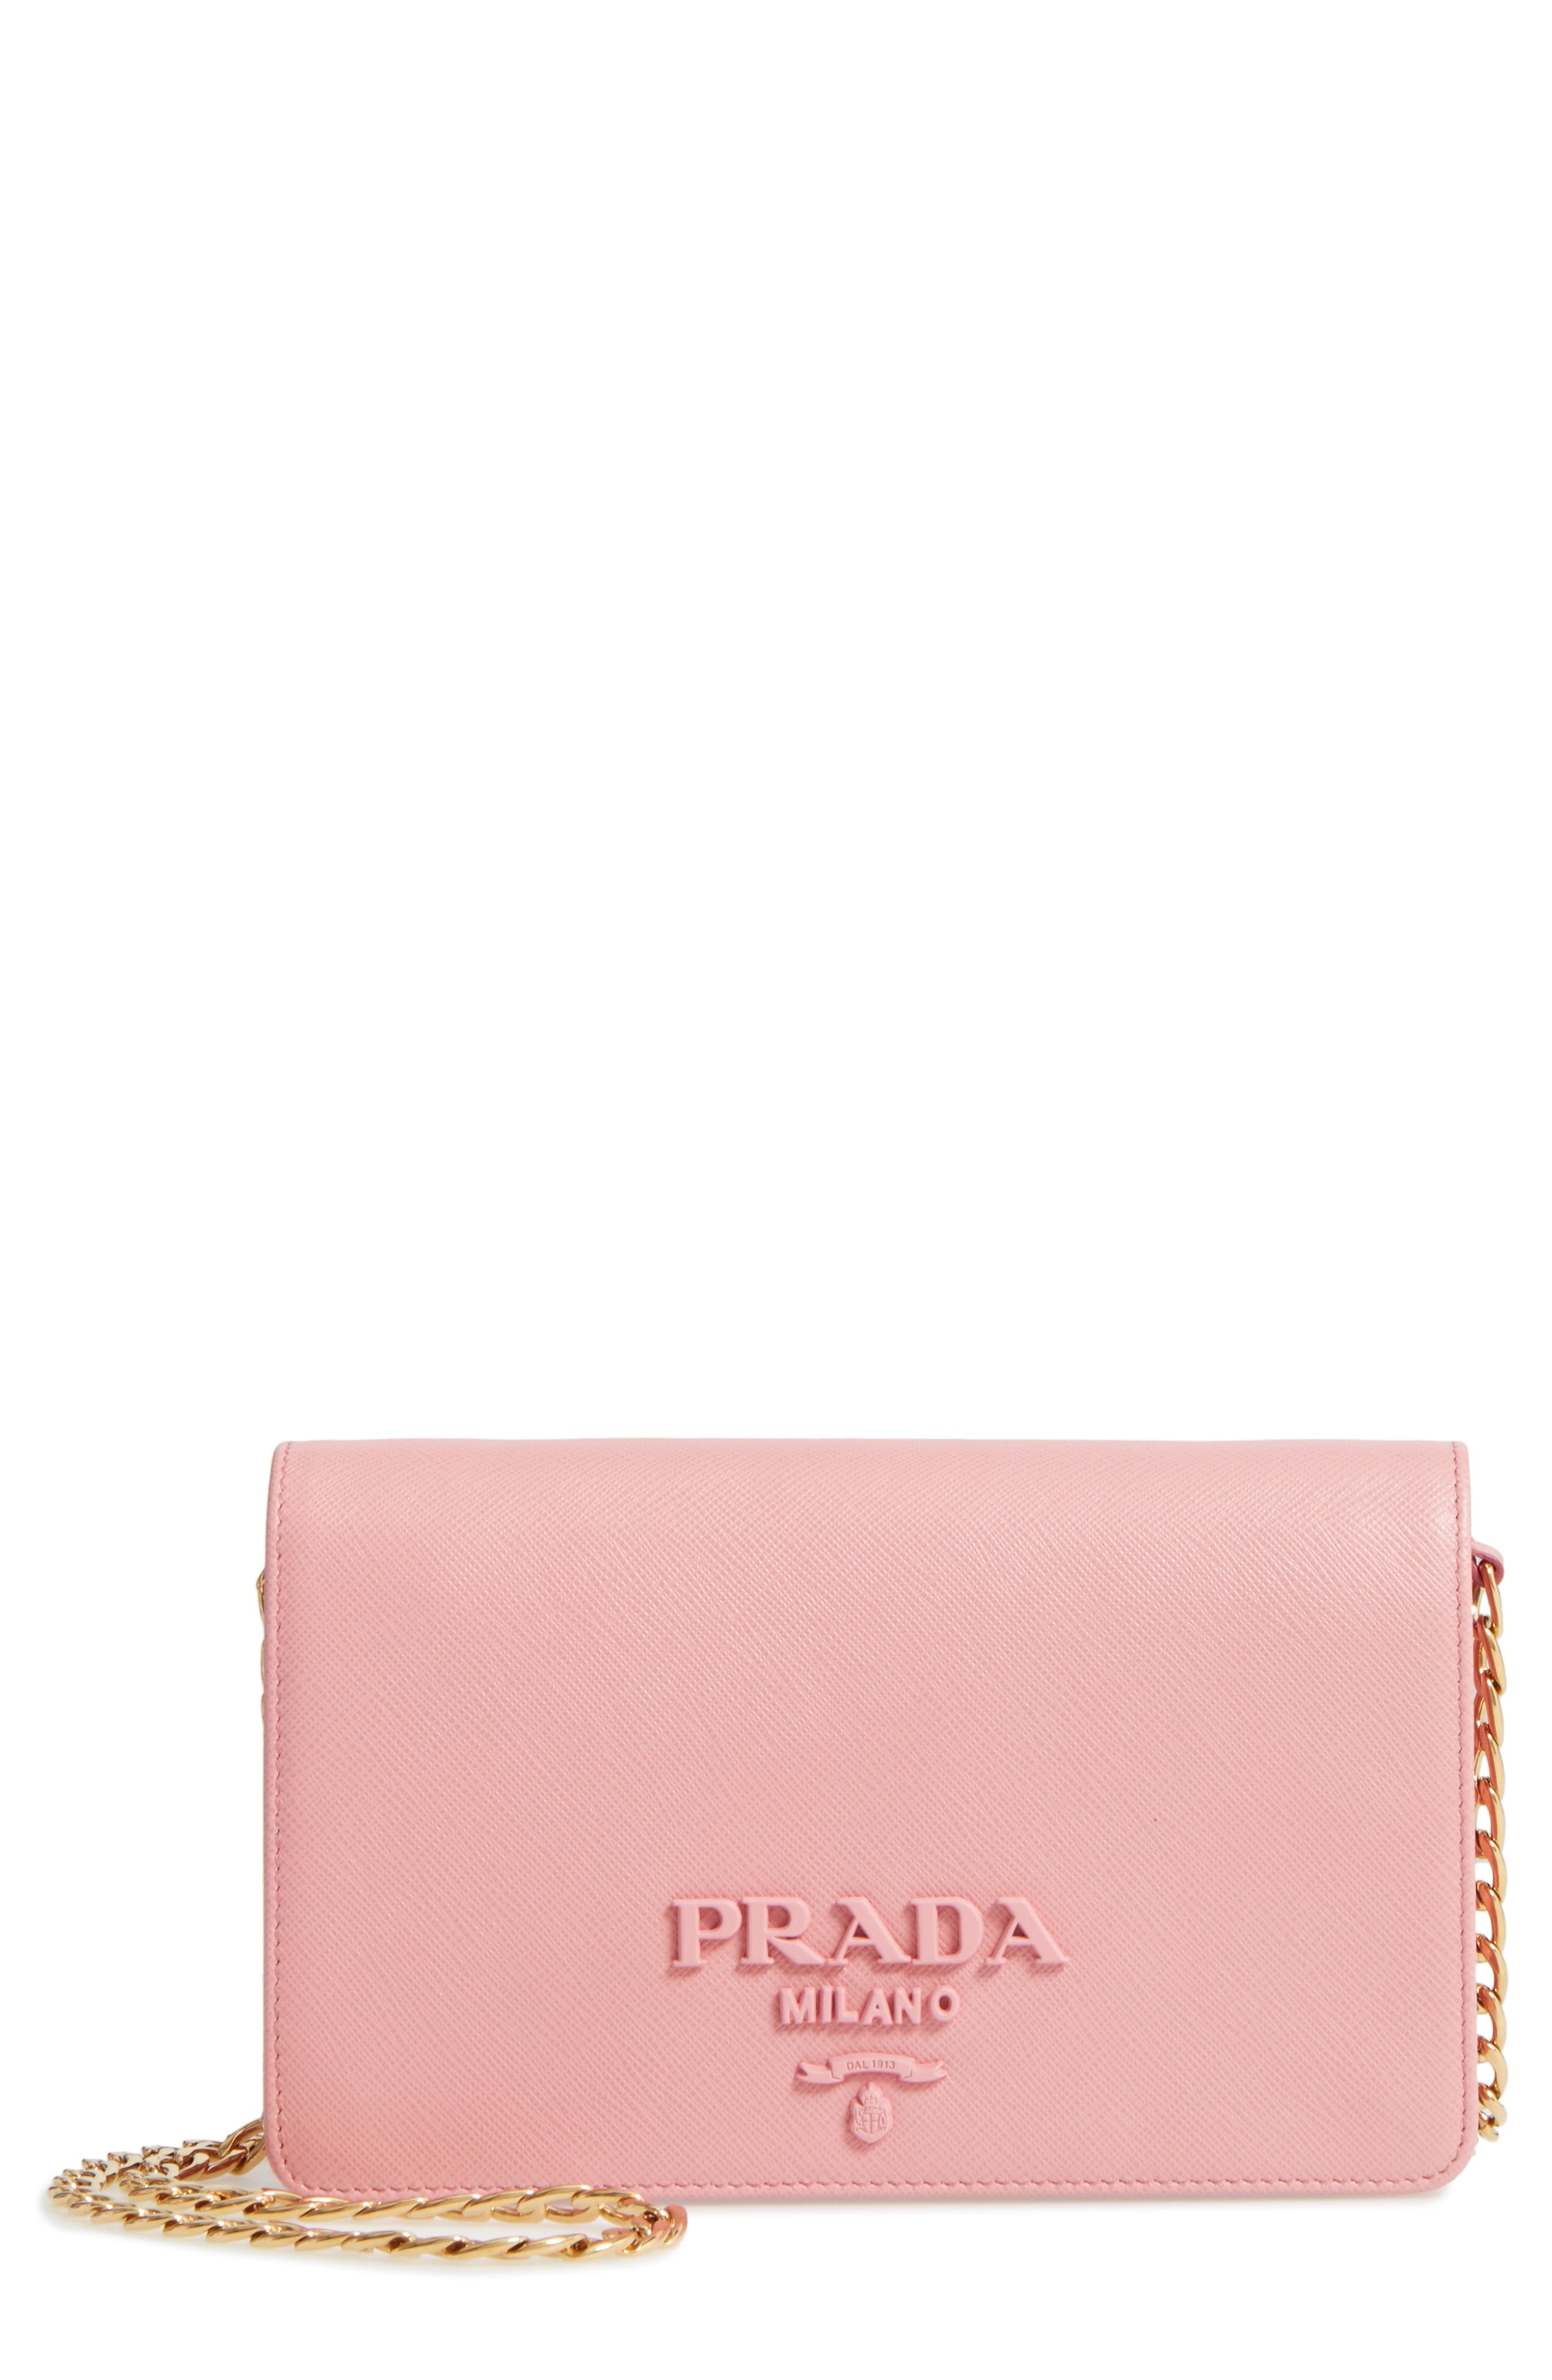 Prada Small Monochrome Crossbody Bag